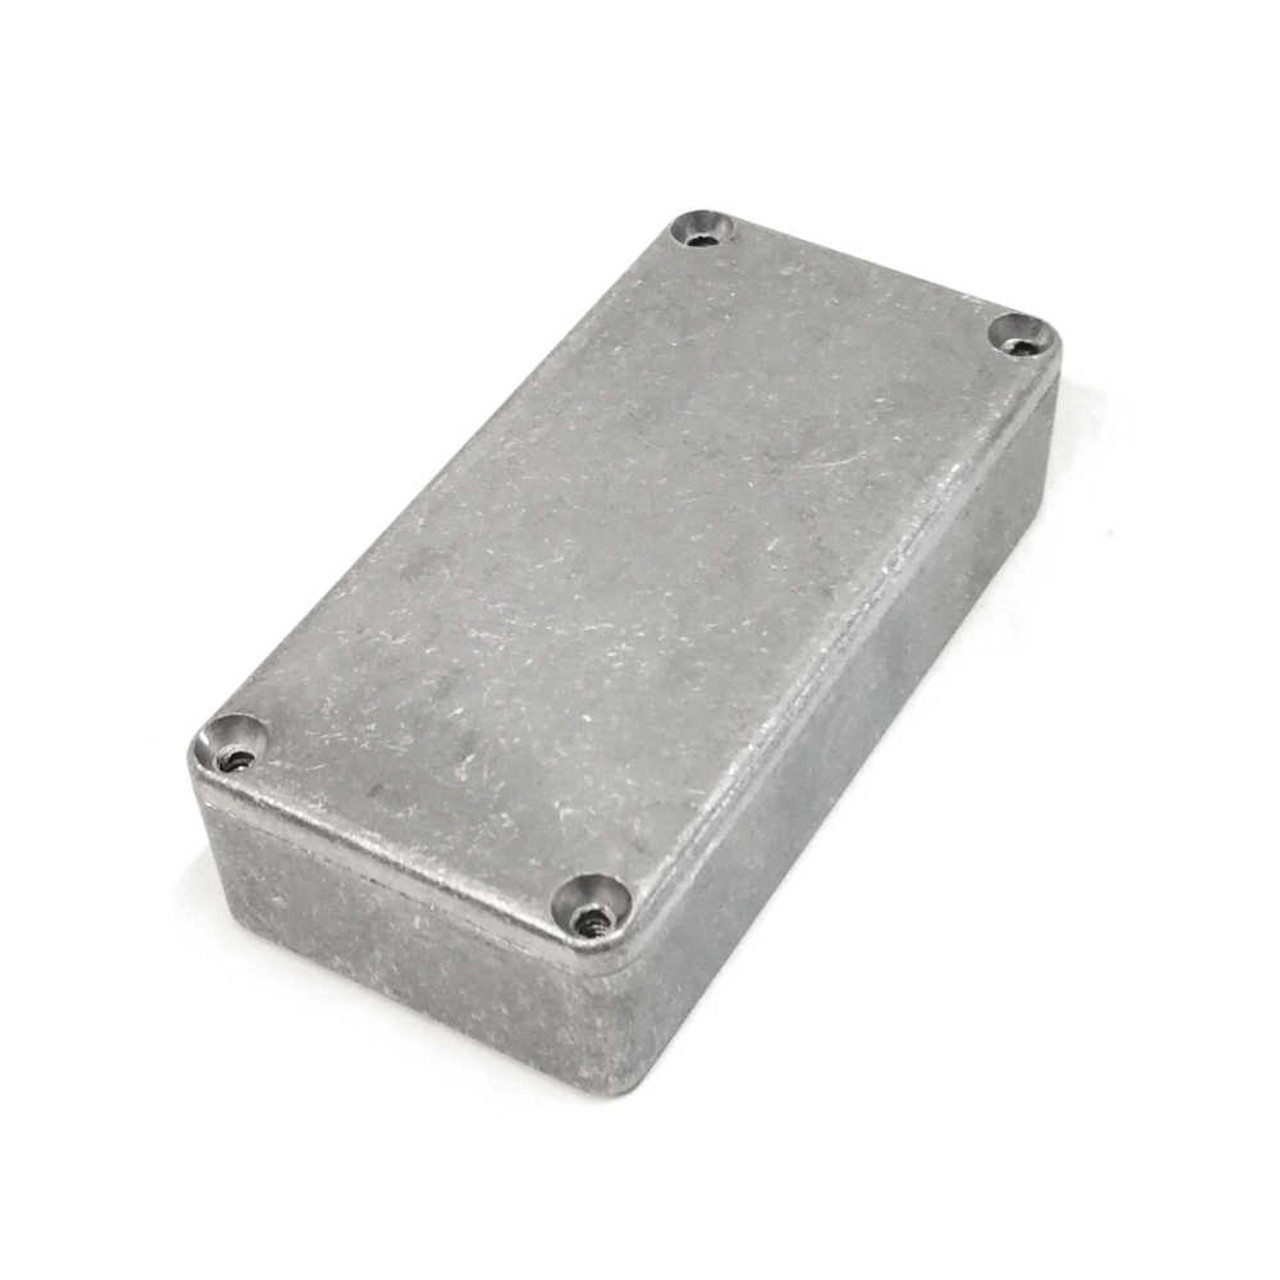 Generic 1590G - Small+ Pedal Enclosure